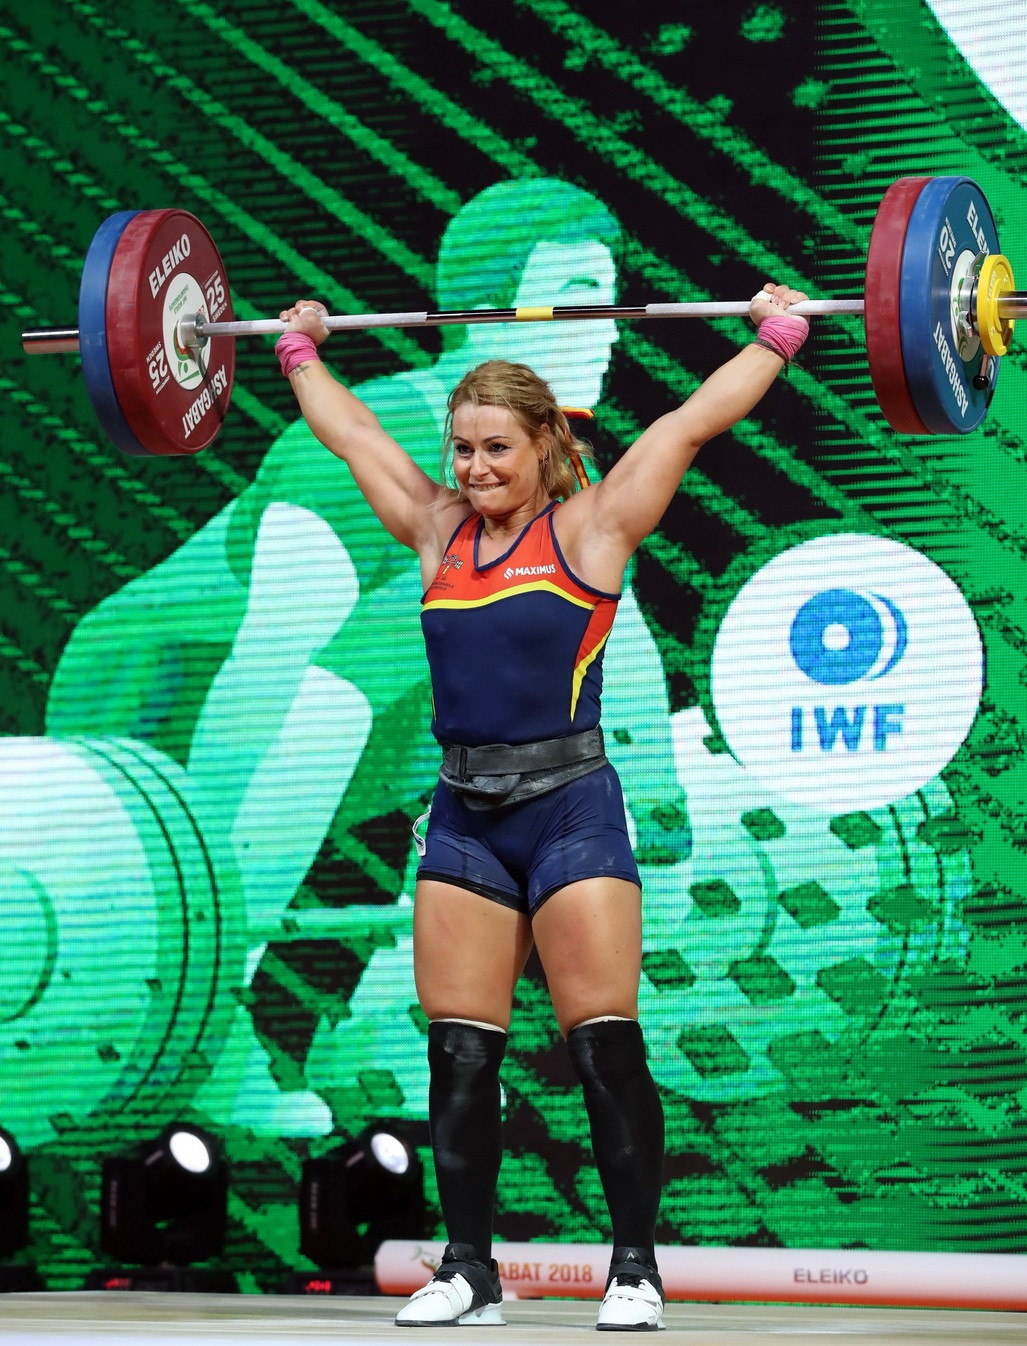 Spain's Lidia Valentín came out on top in the women's 81kg division ©IWF